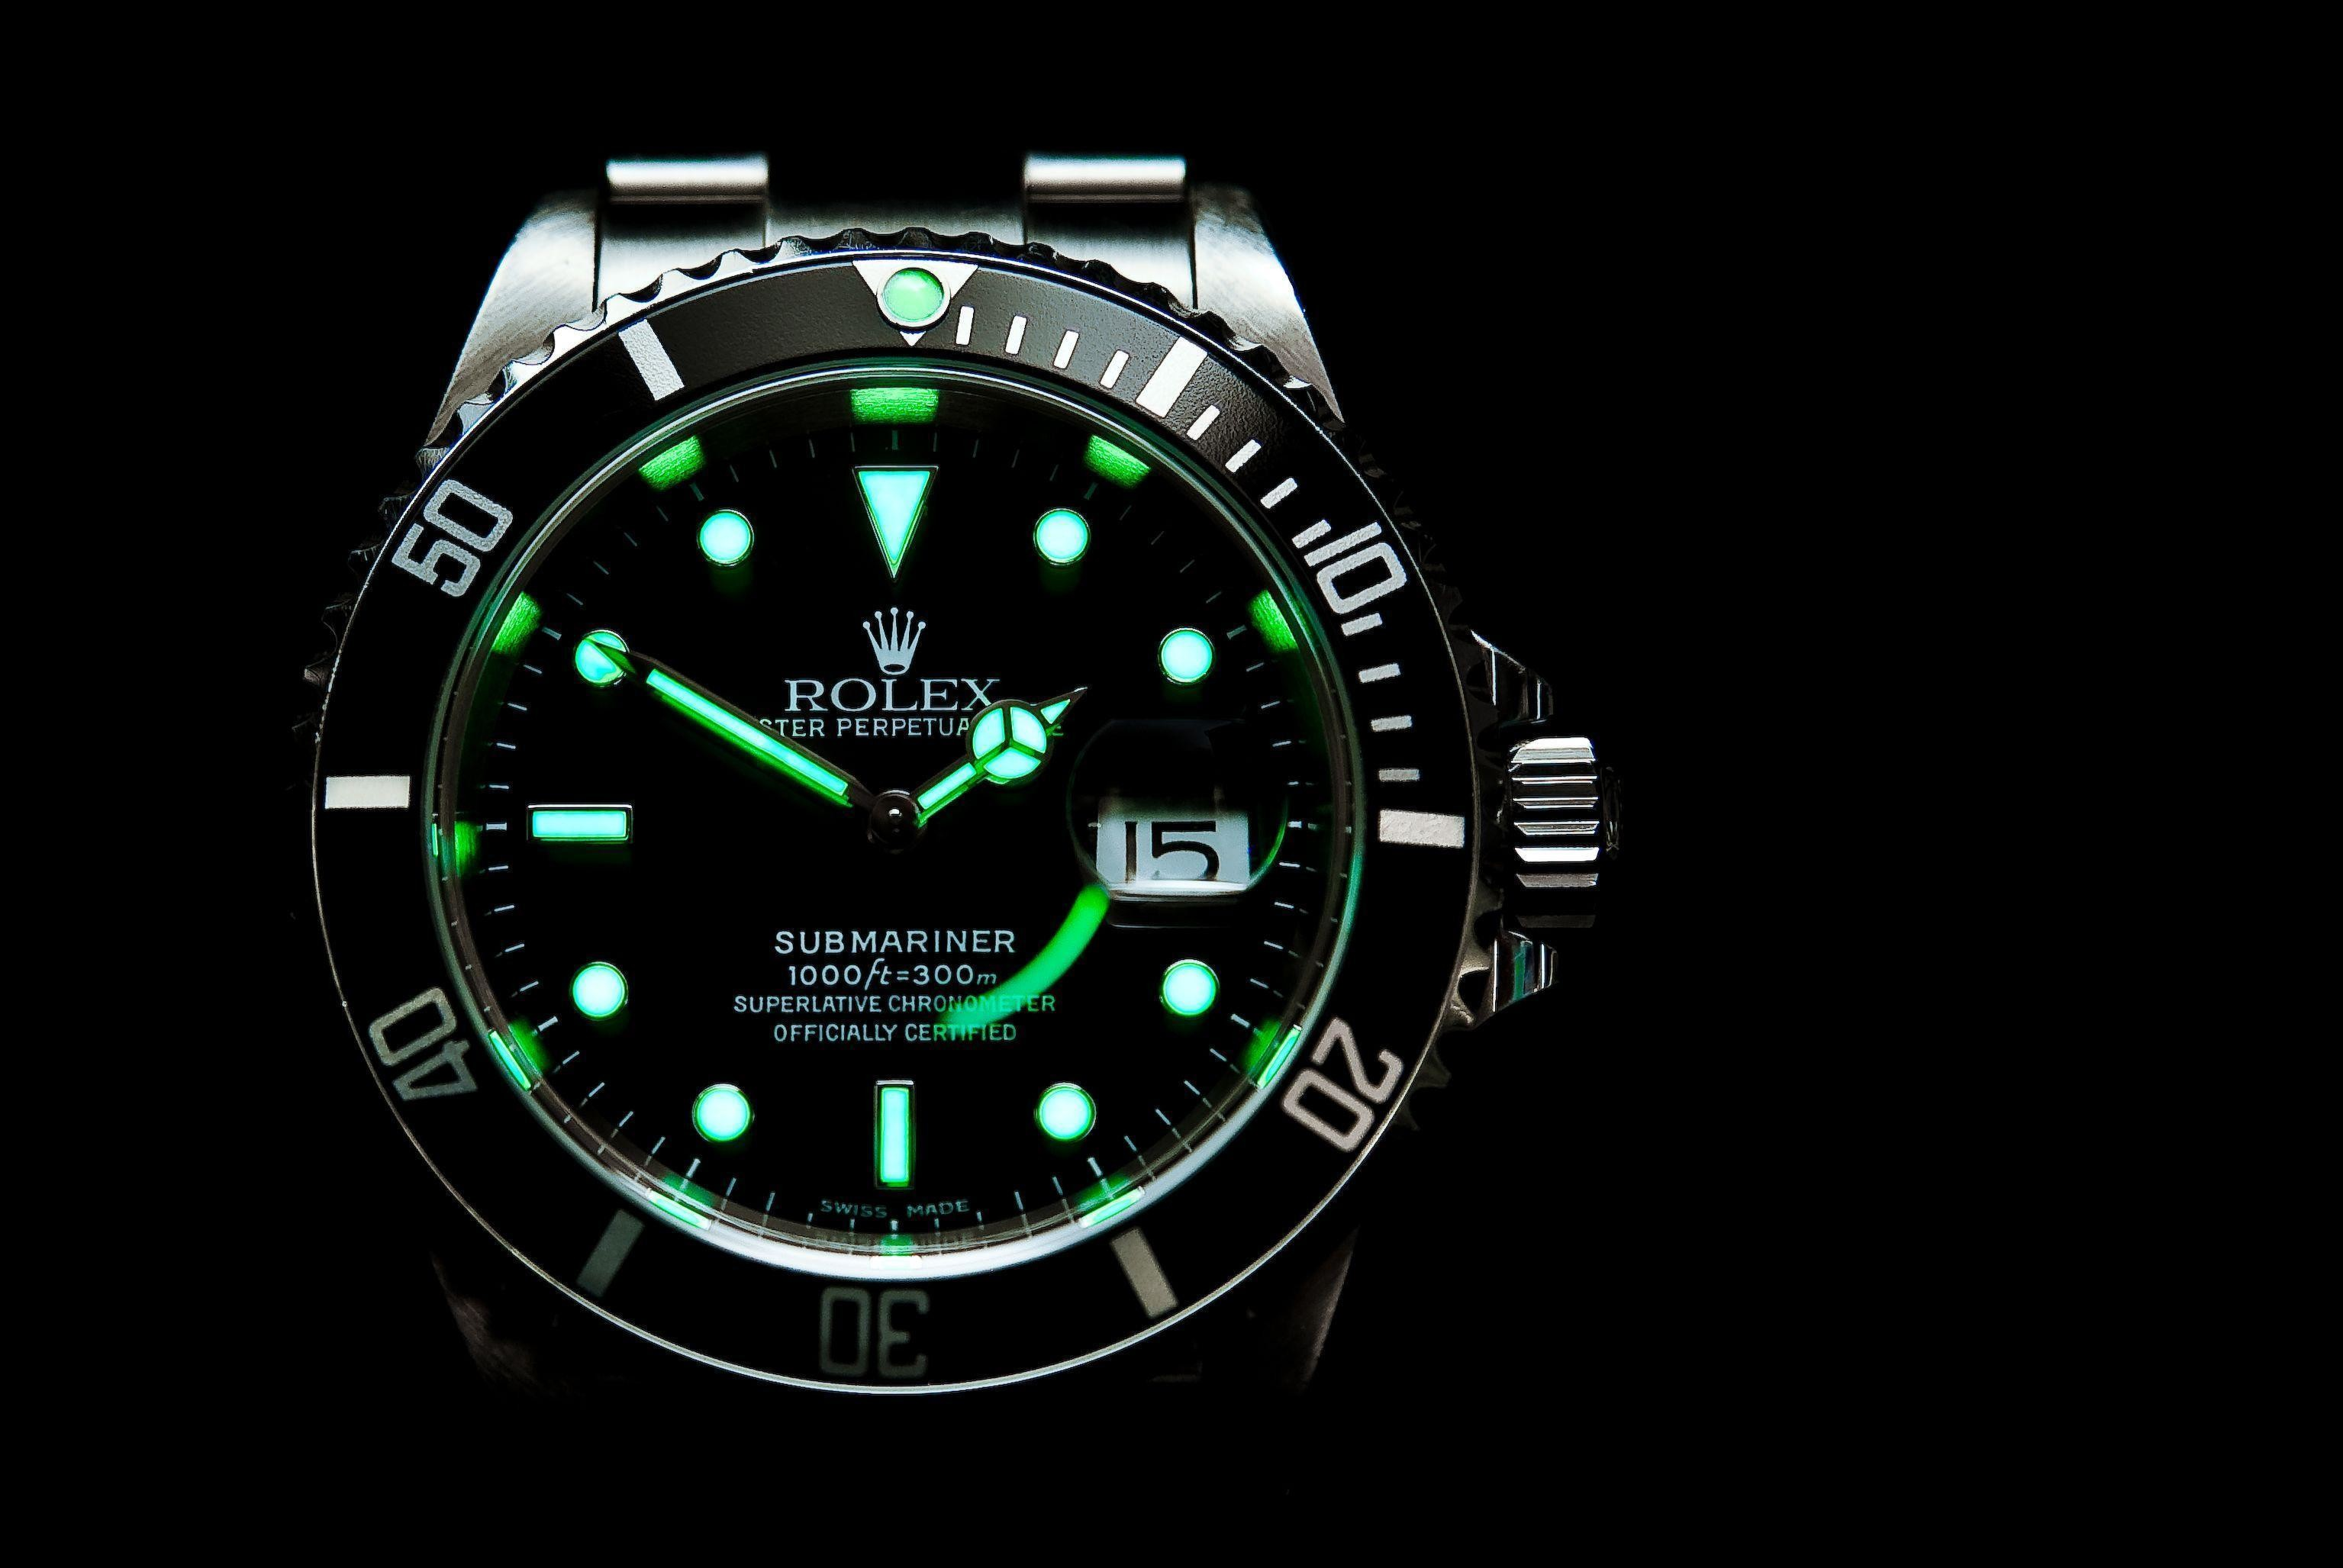 Res: 3070x2055, 55 Stunning ROLEX Wallpapers for your desktop | Timepeaks used .